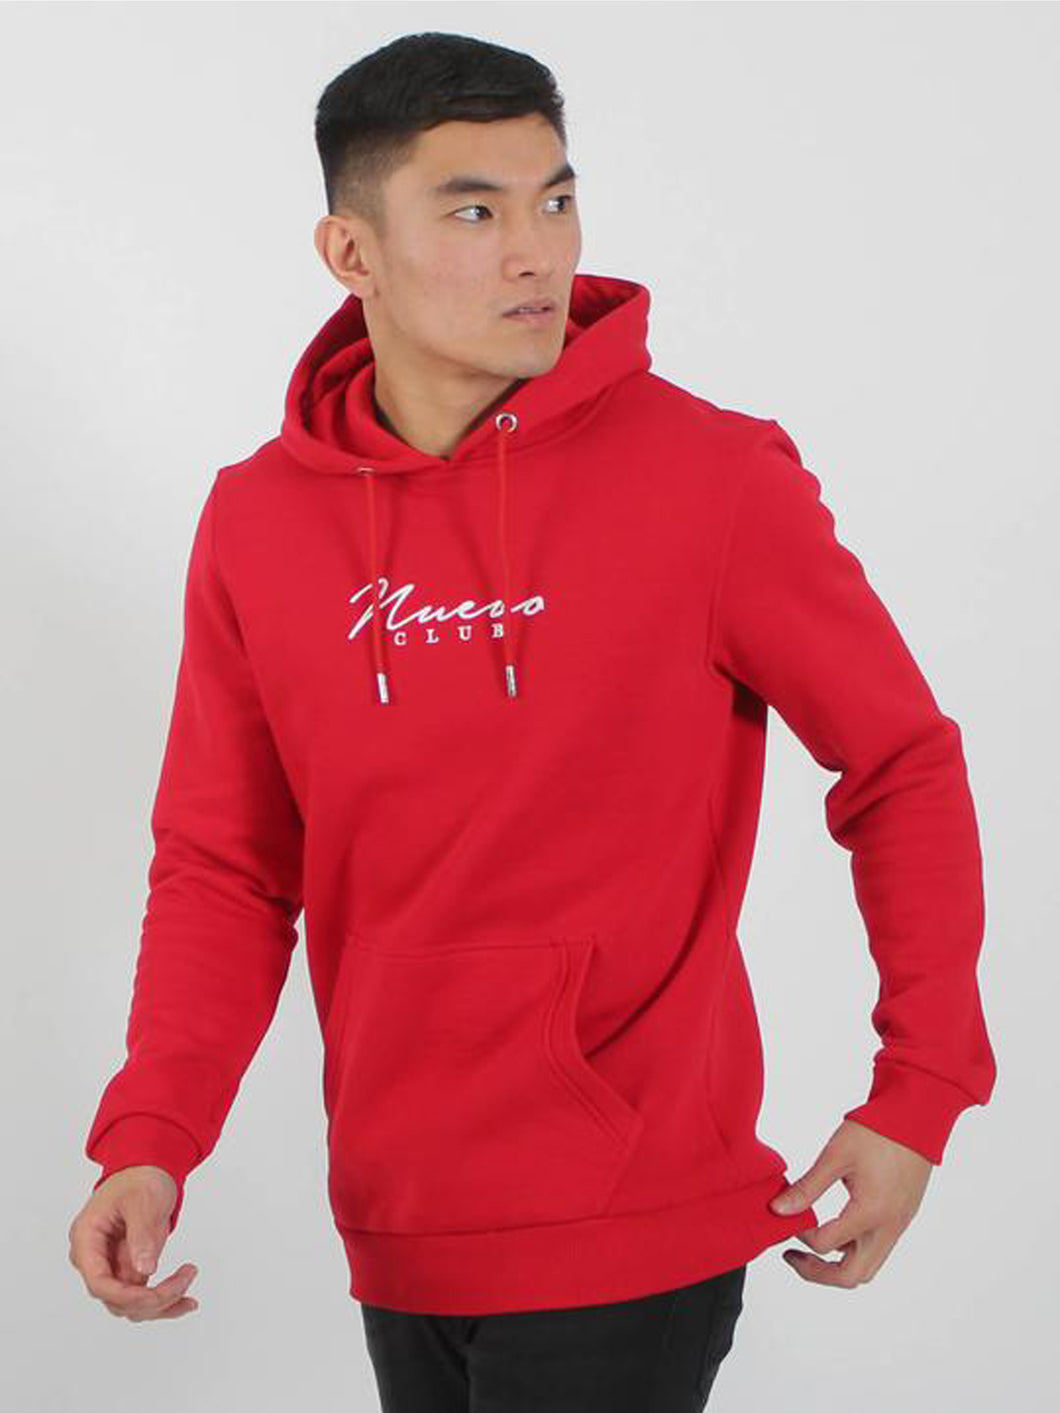 Nuevo Club Signature Hoody - Red